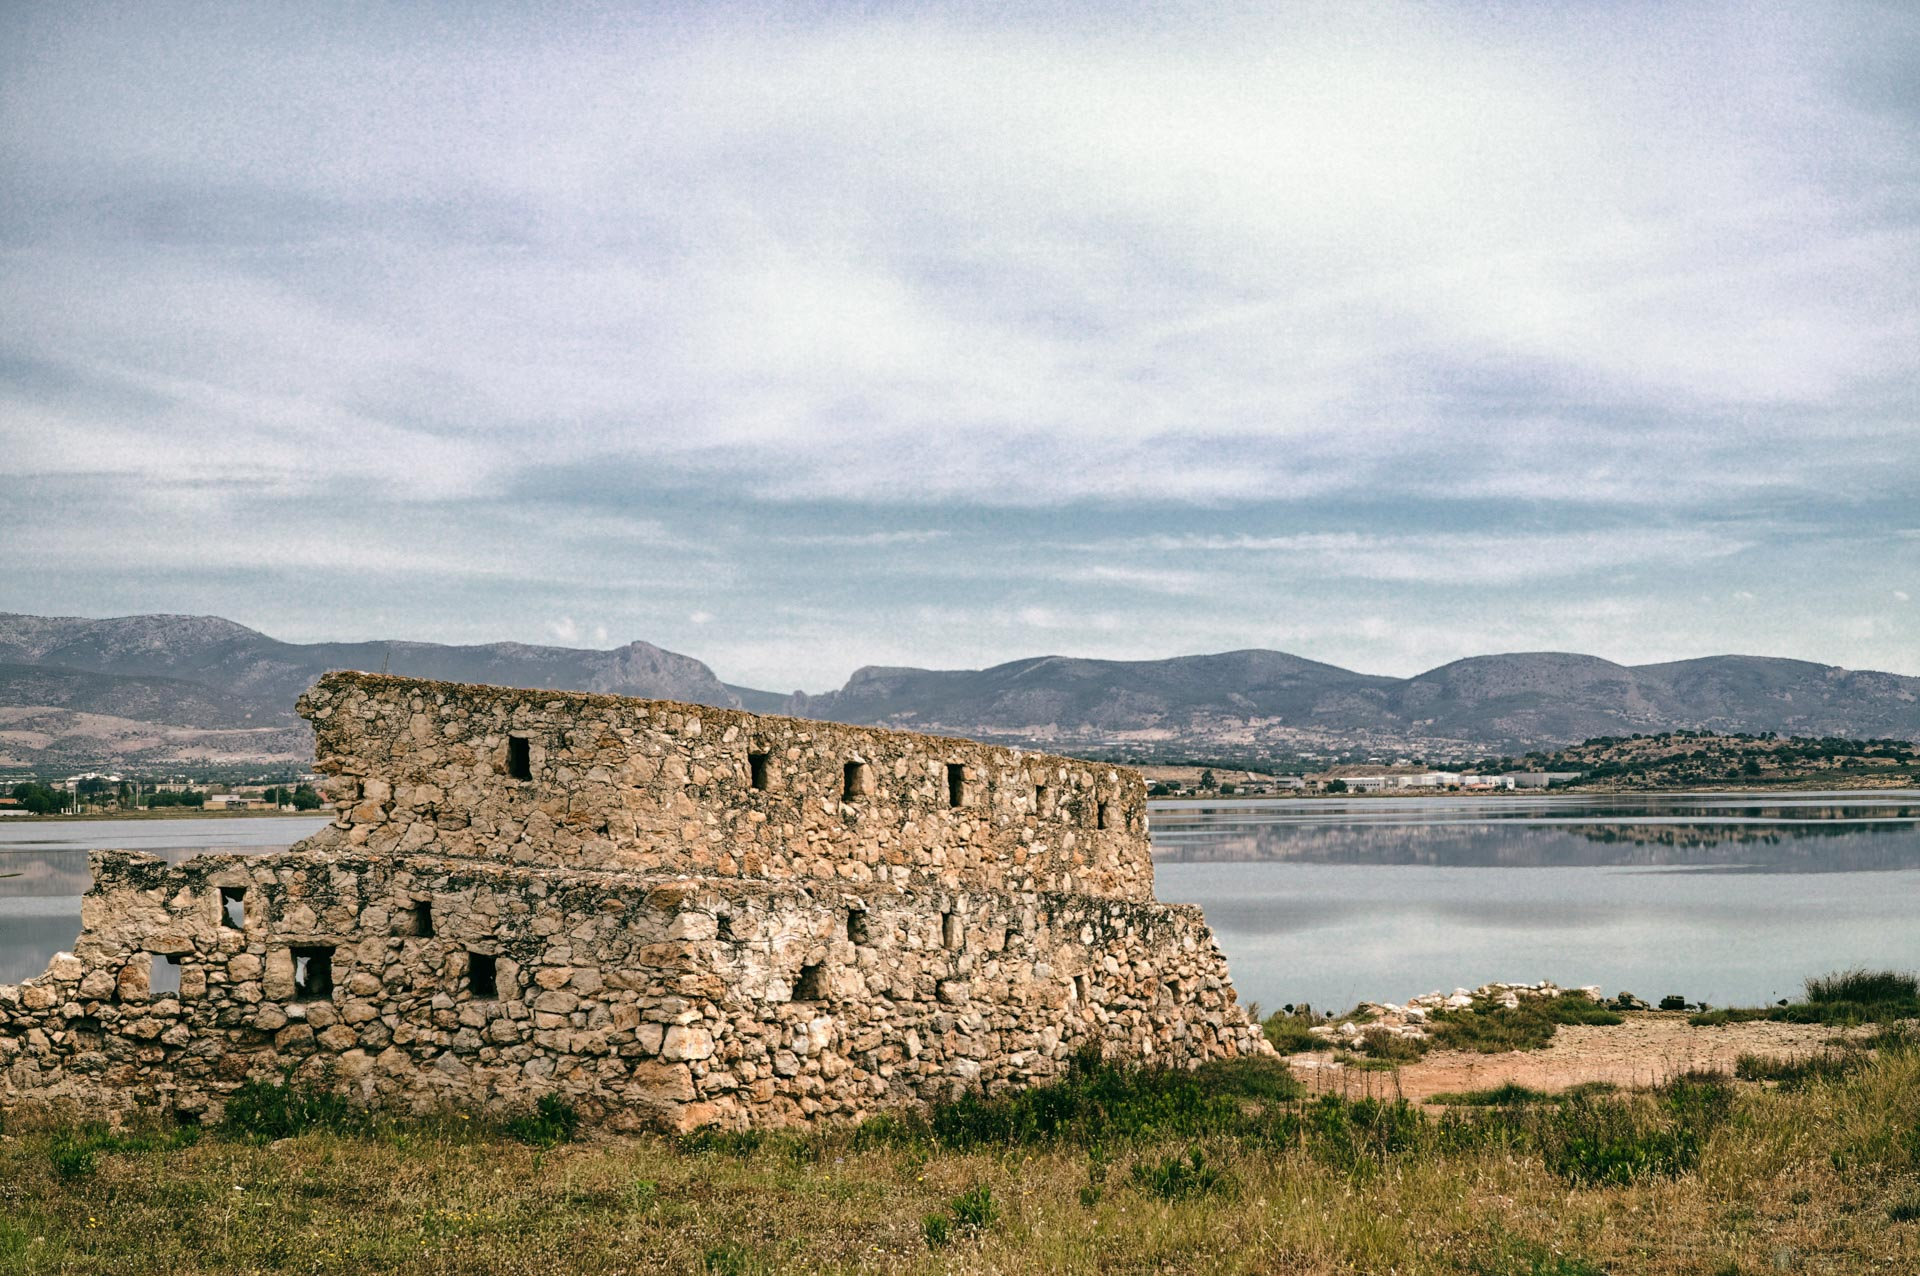 The Wall of Agia Triada